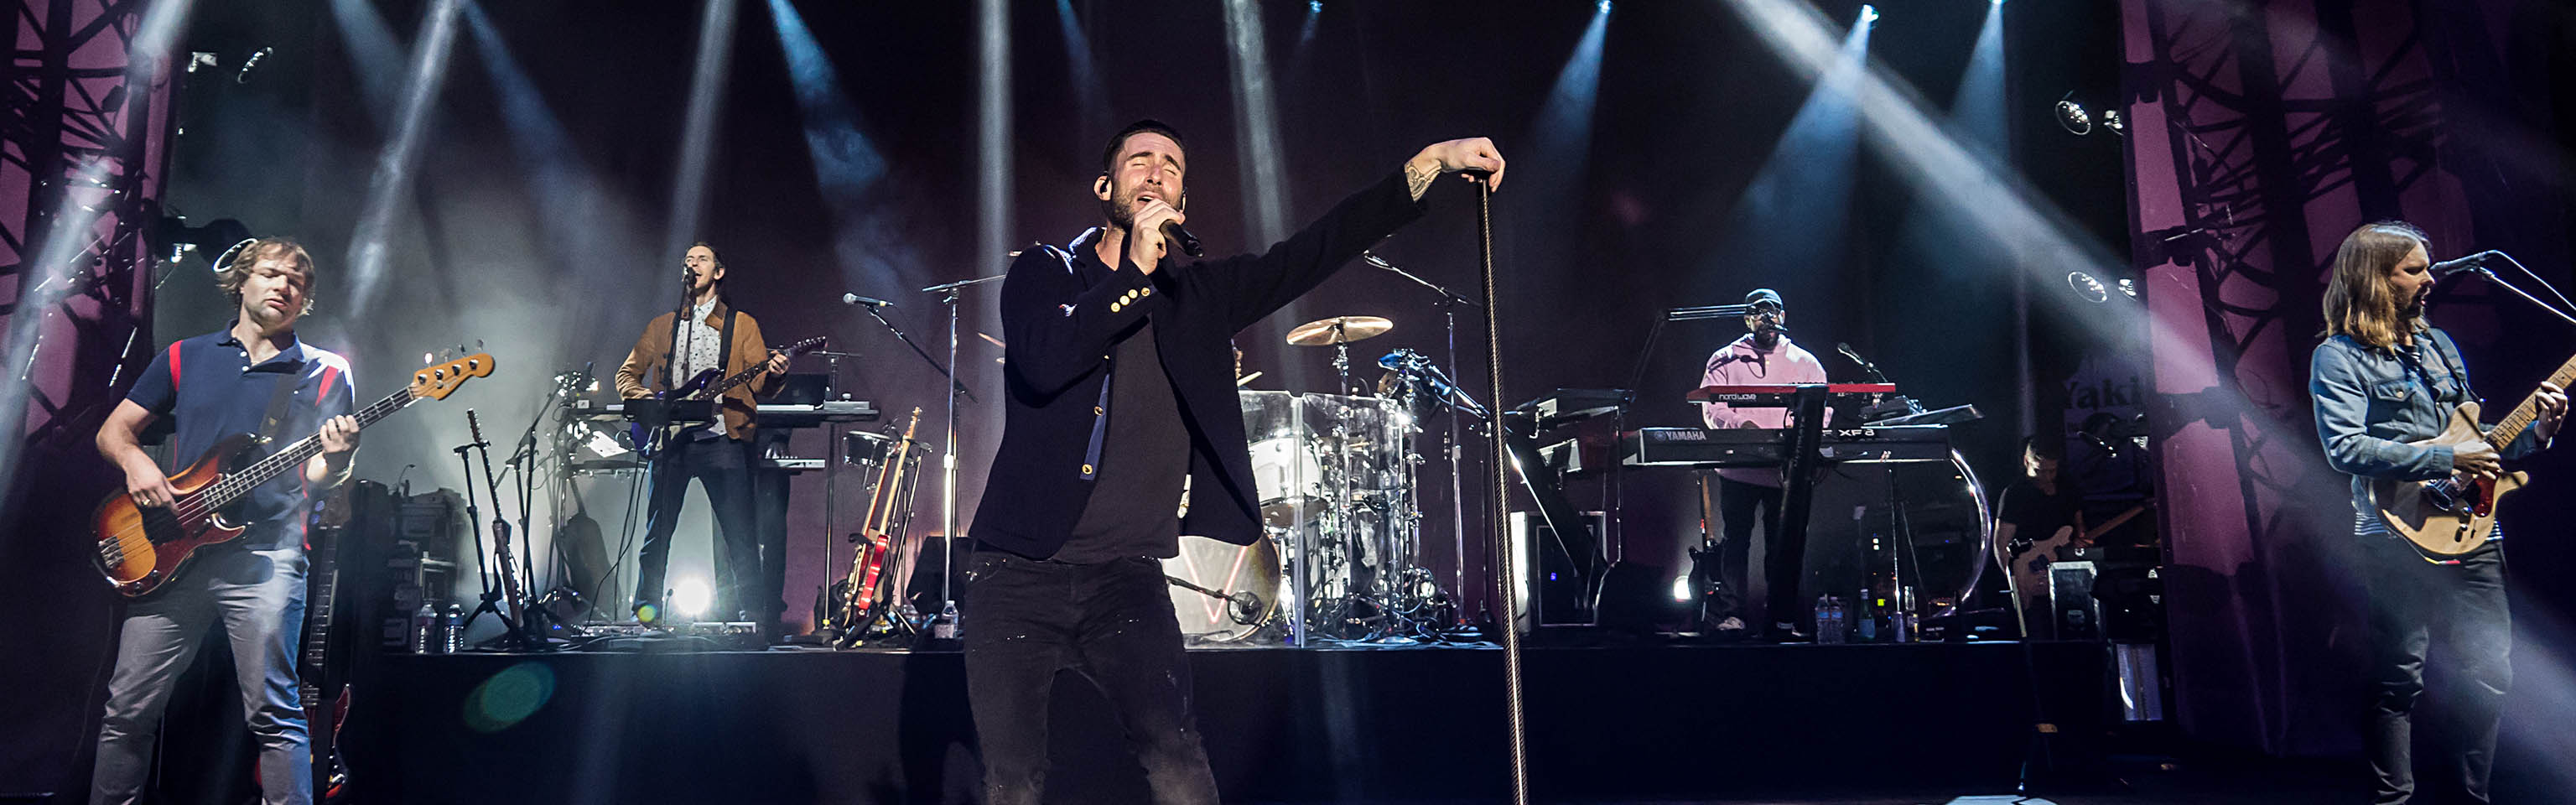 Maroon 5 at the Airbnb Open Spotlight